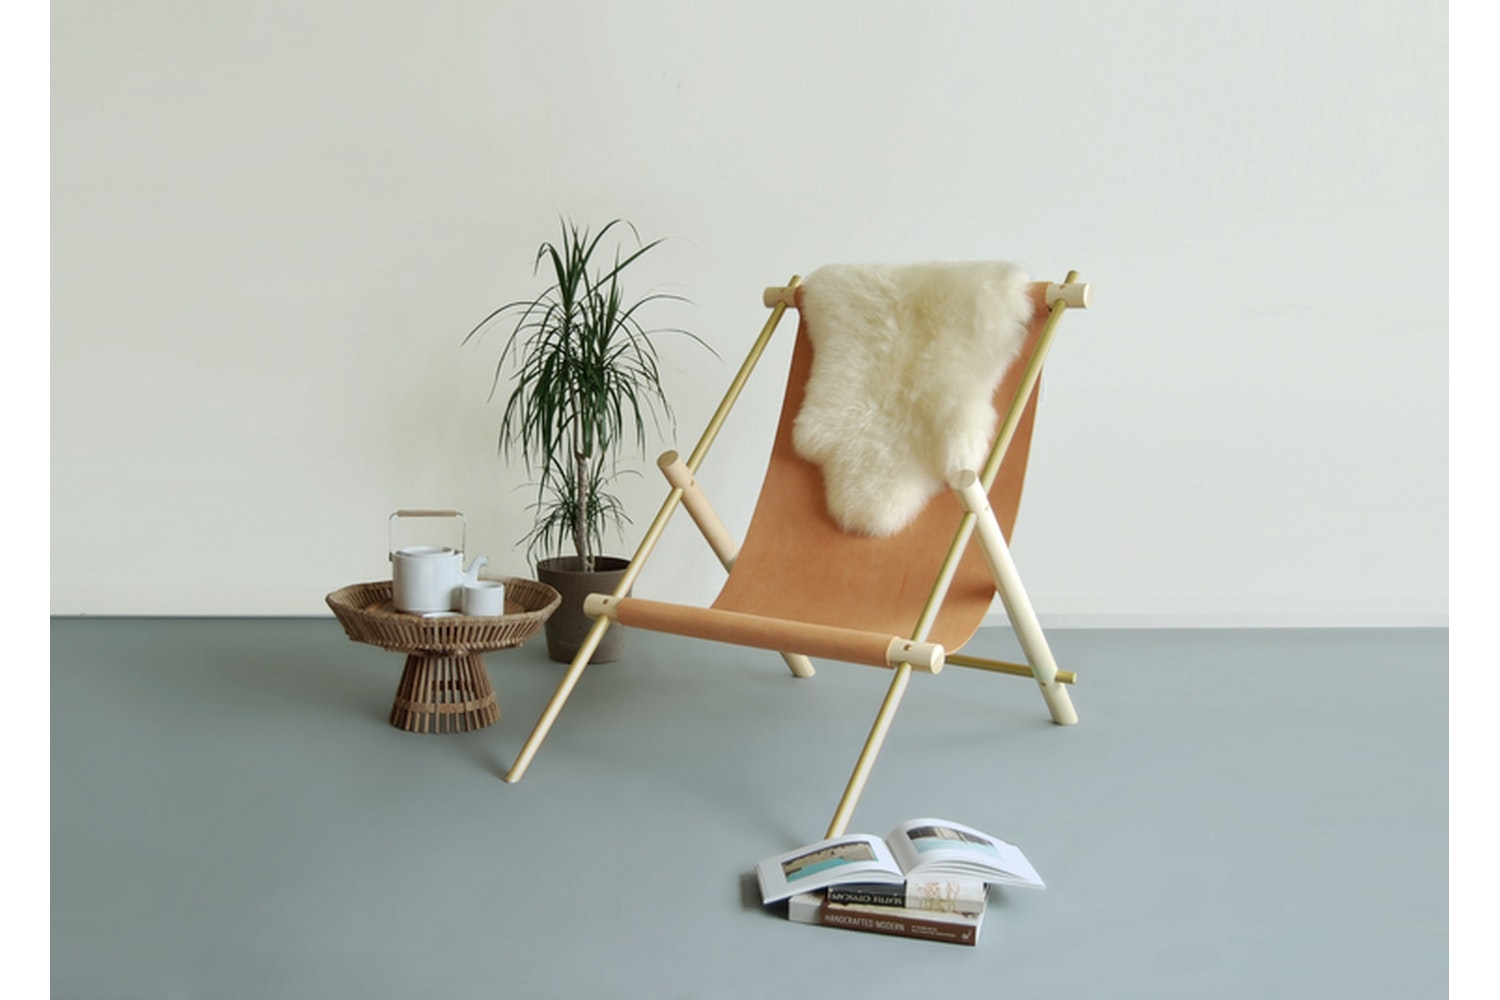 Ovis Lounge Chair by Ladies & Gentlemen Studio